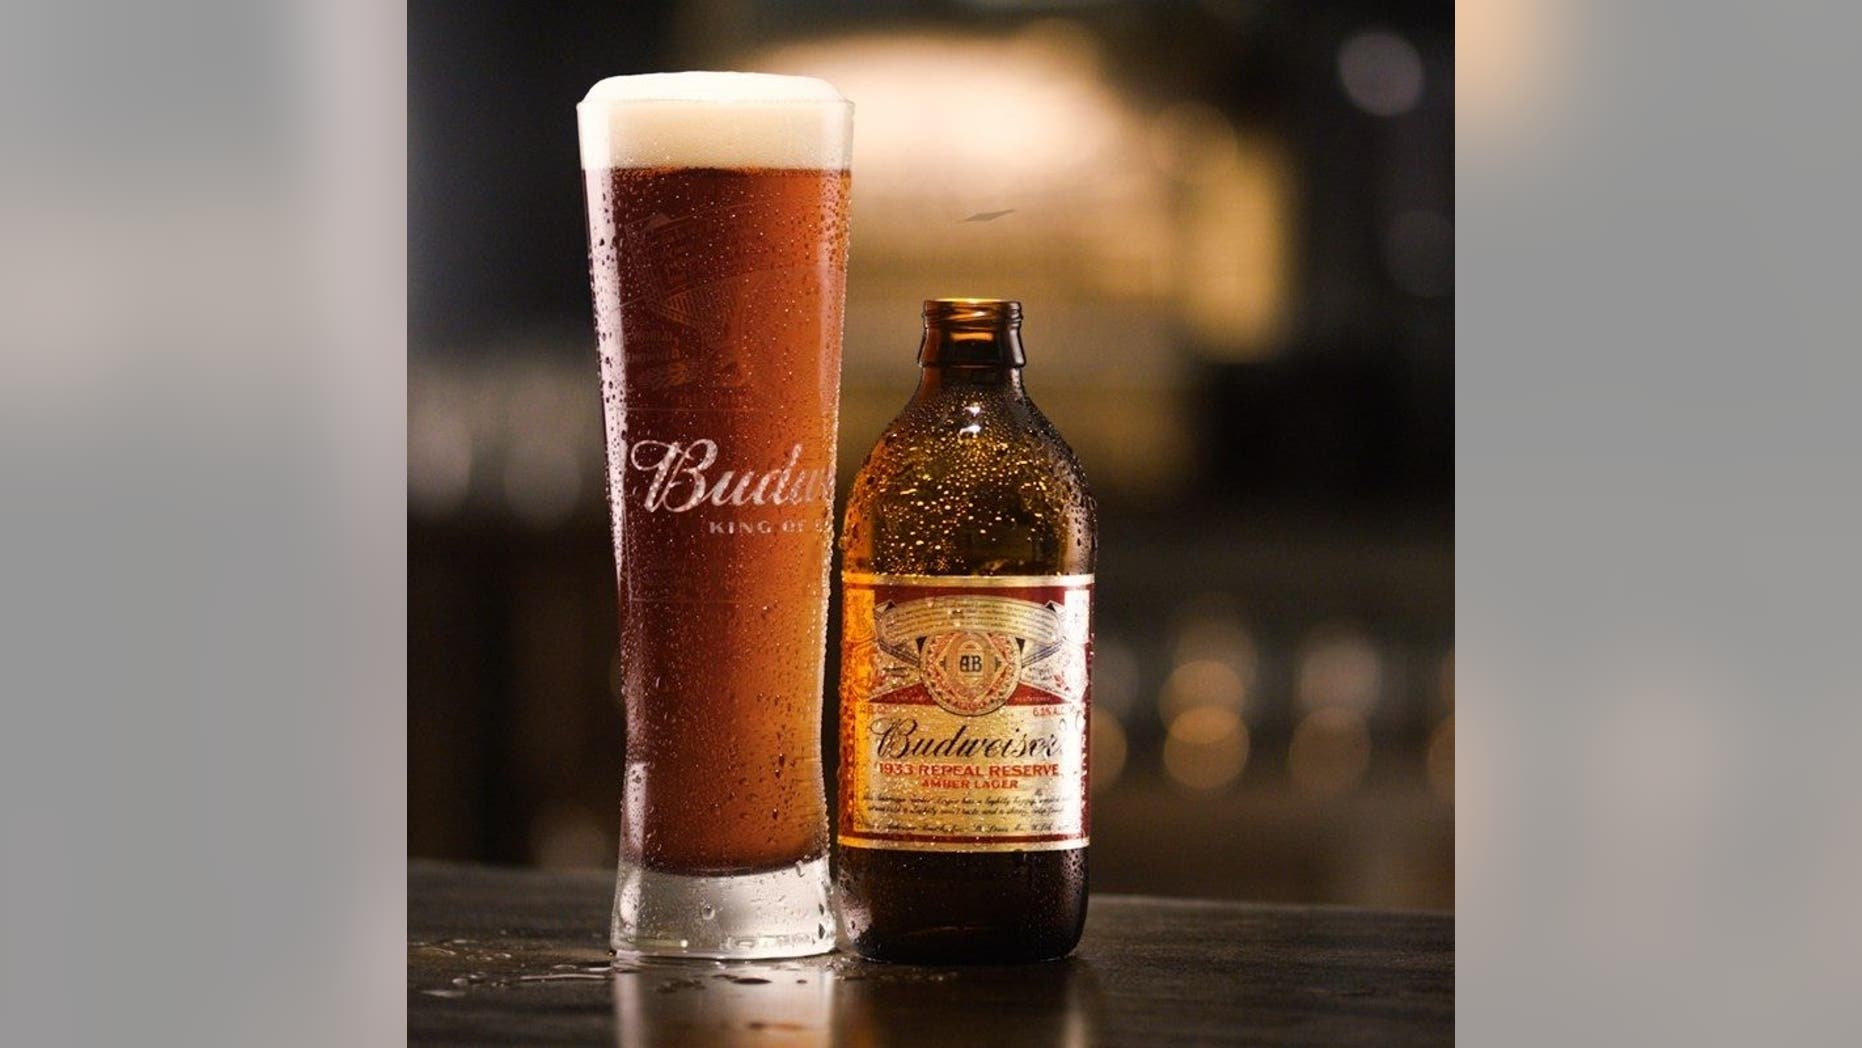 Budweiser is paying homage to one of Adolphus Busch's early recipes.